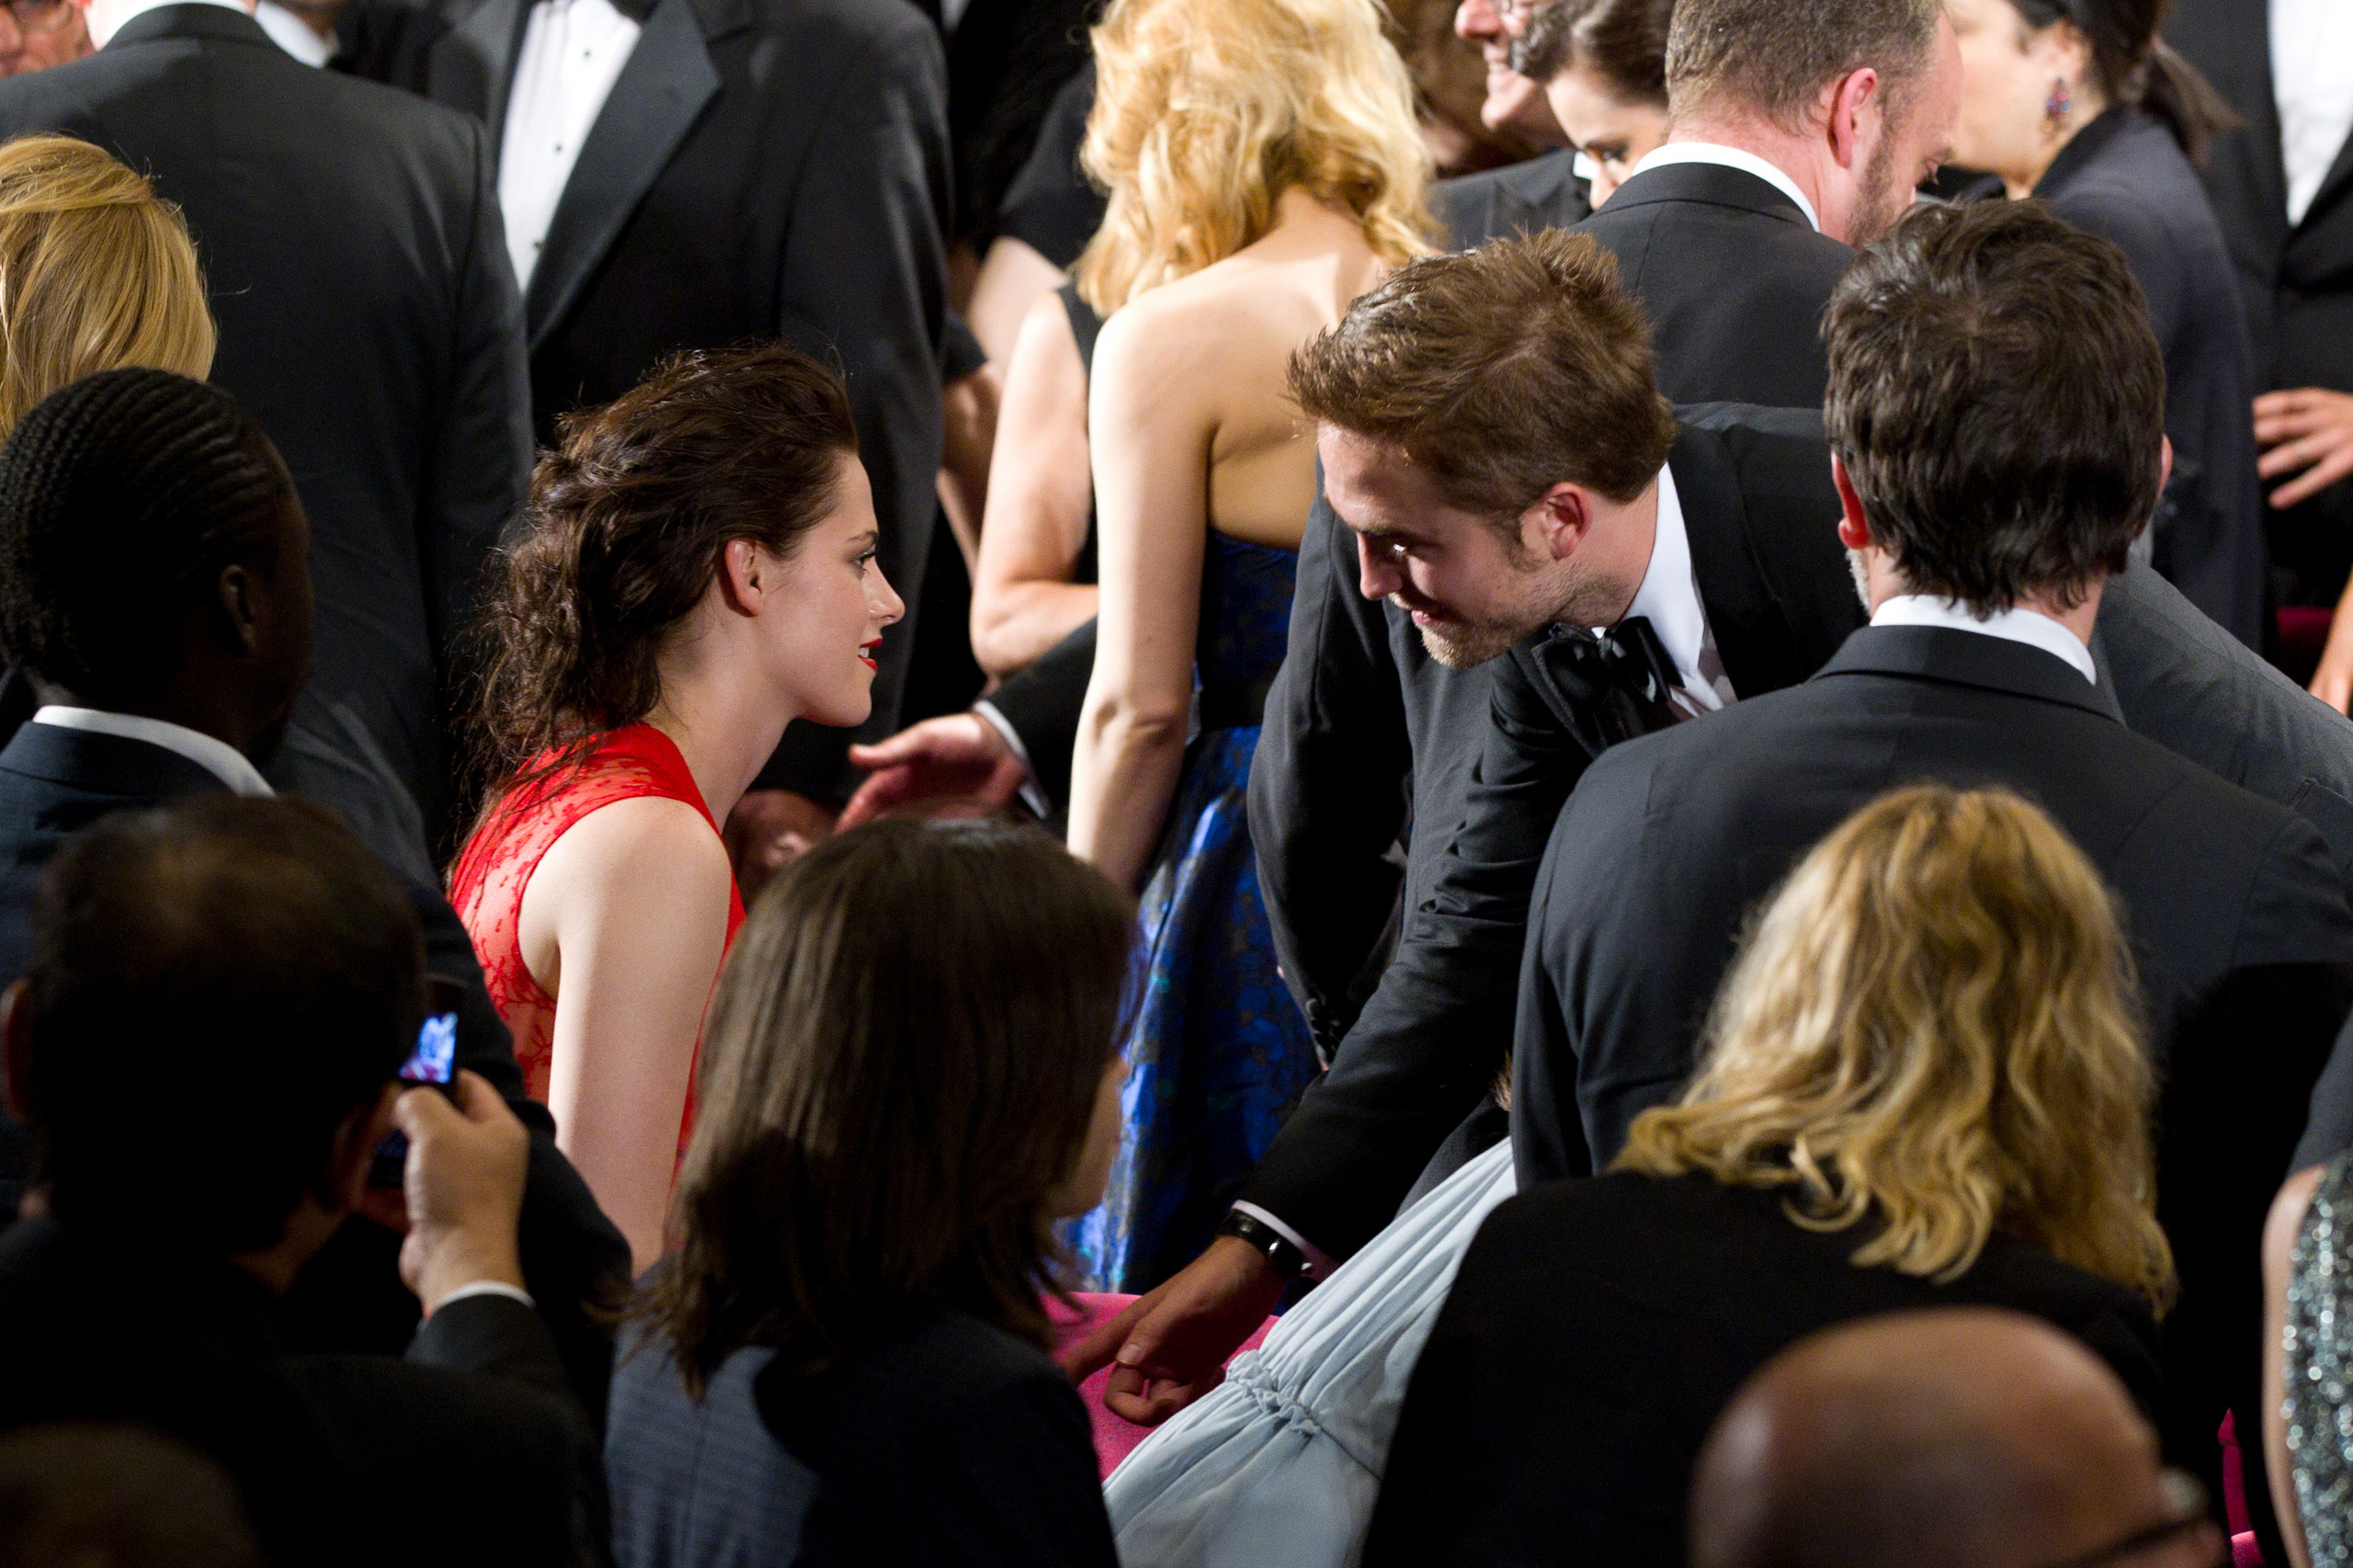 Download this Cannes Robert Pattinson And Kristen Stewart picture